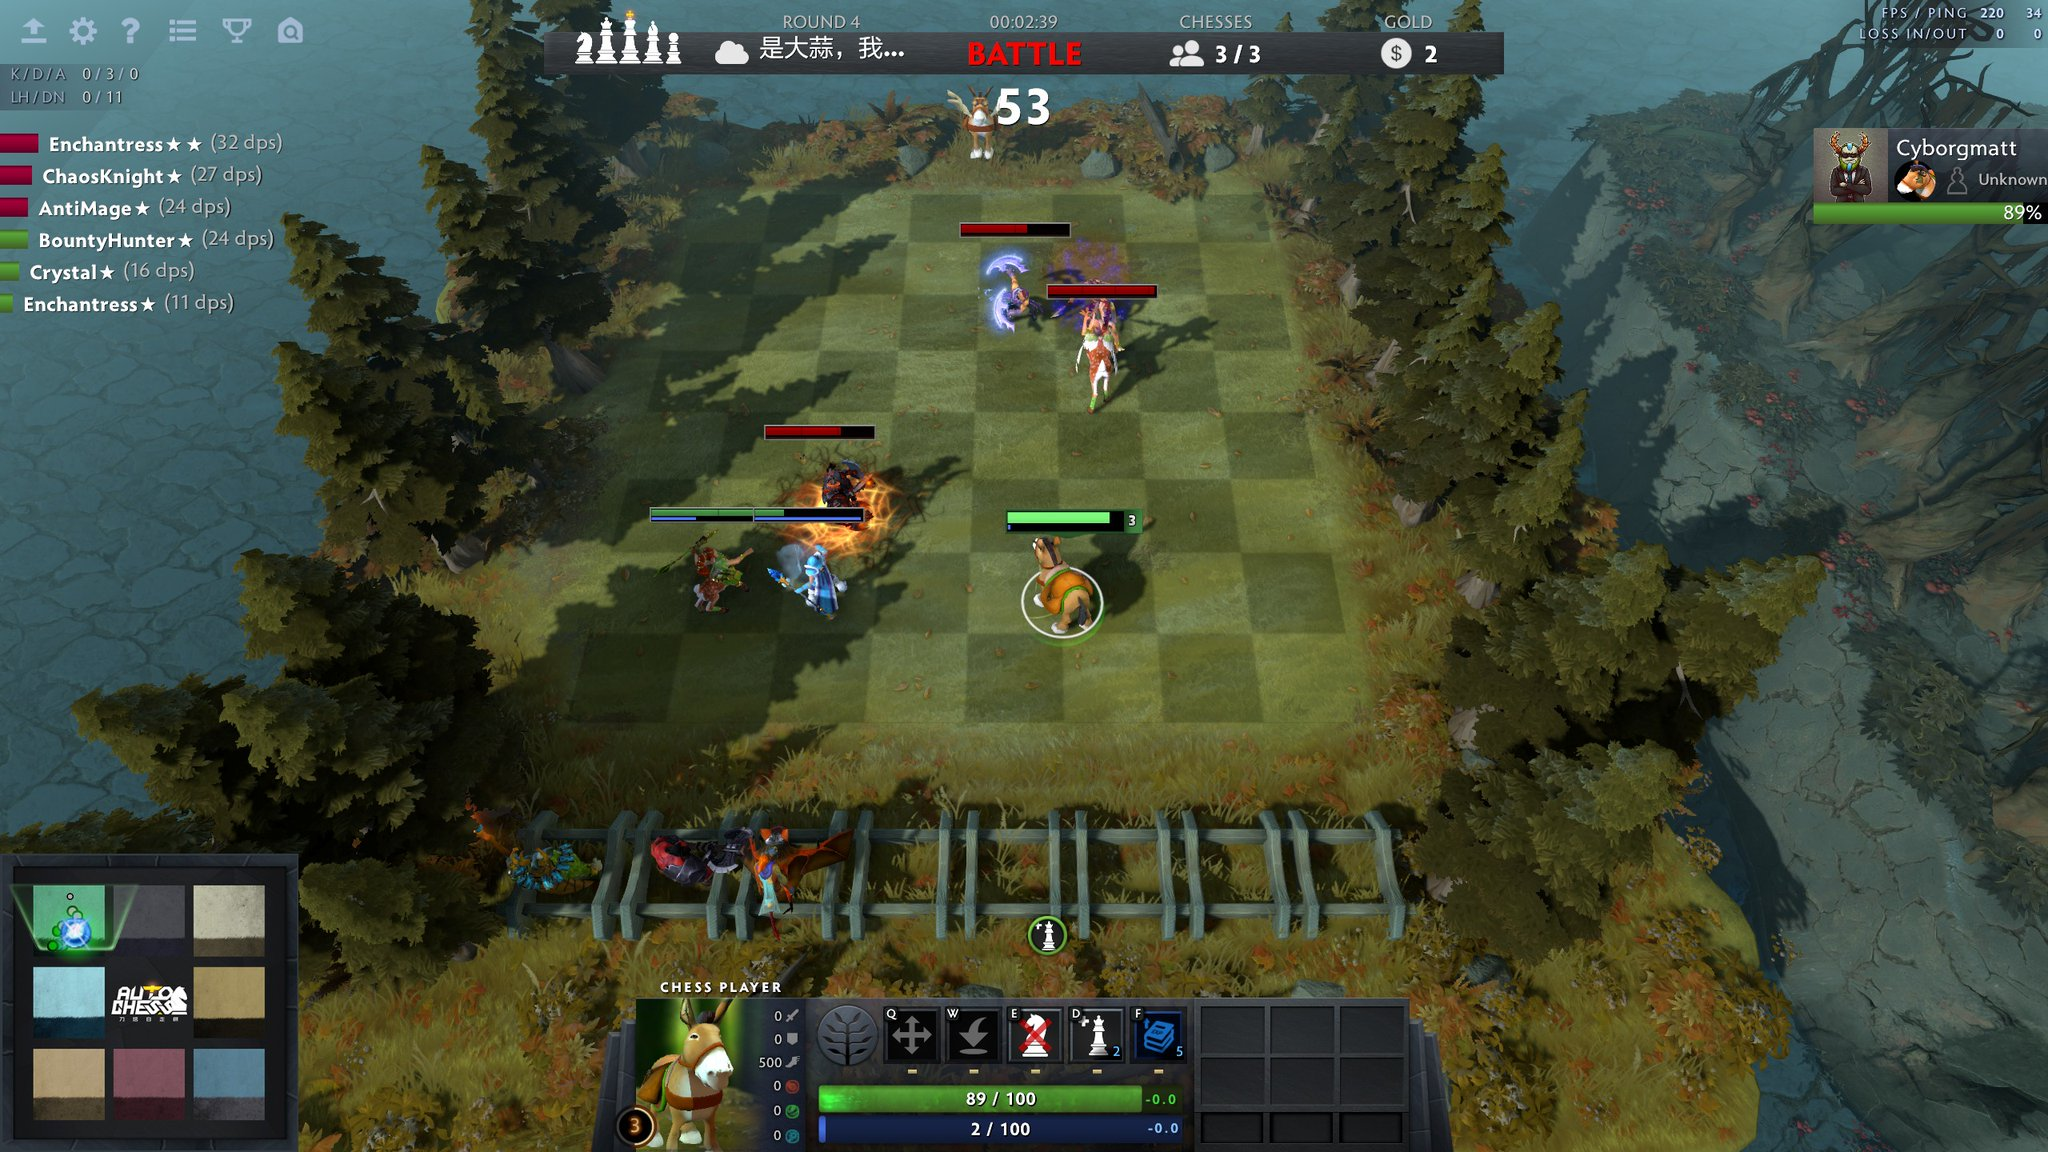 Dota 2: This New Dota 2 Custom Mode Is Way More Popular Than